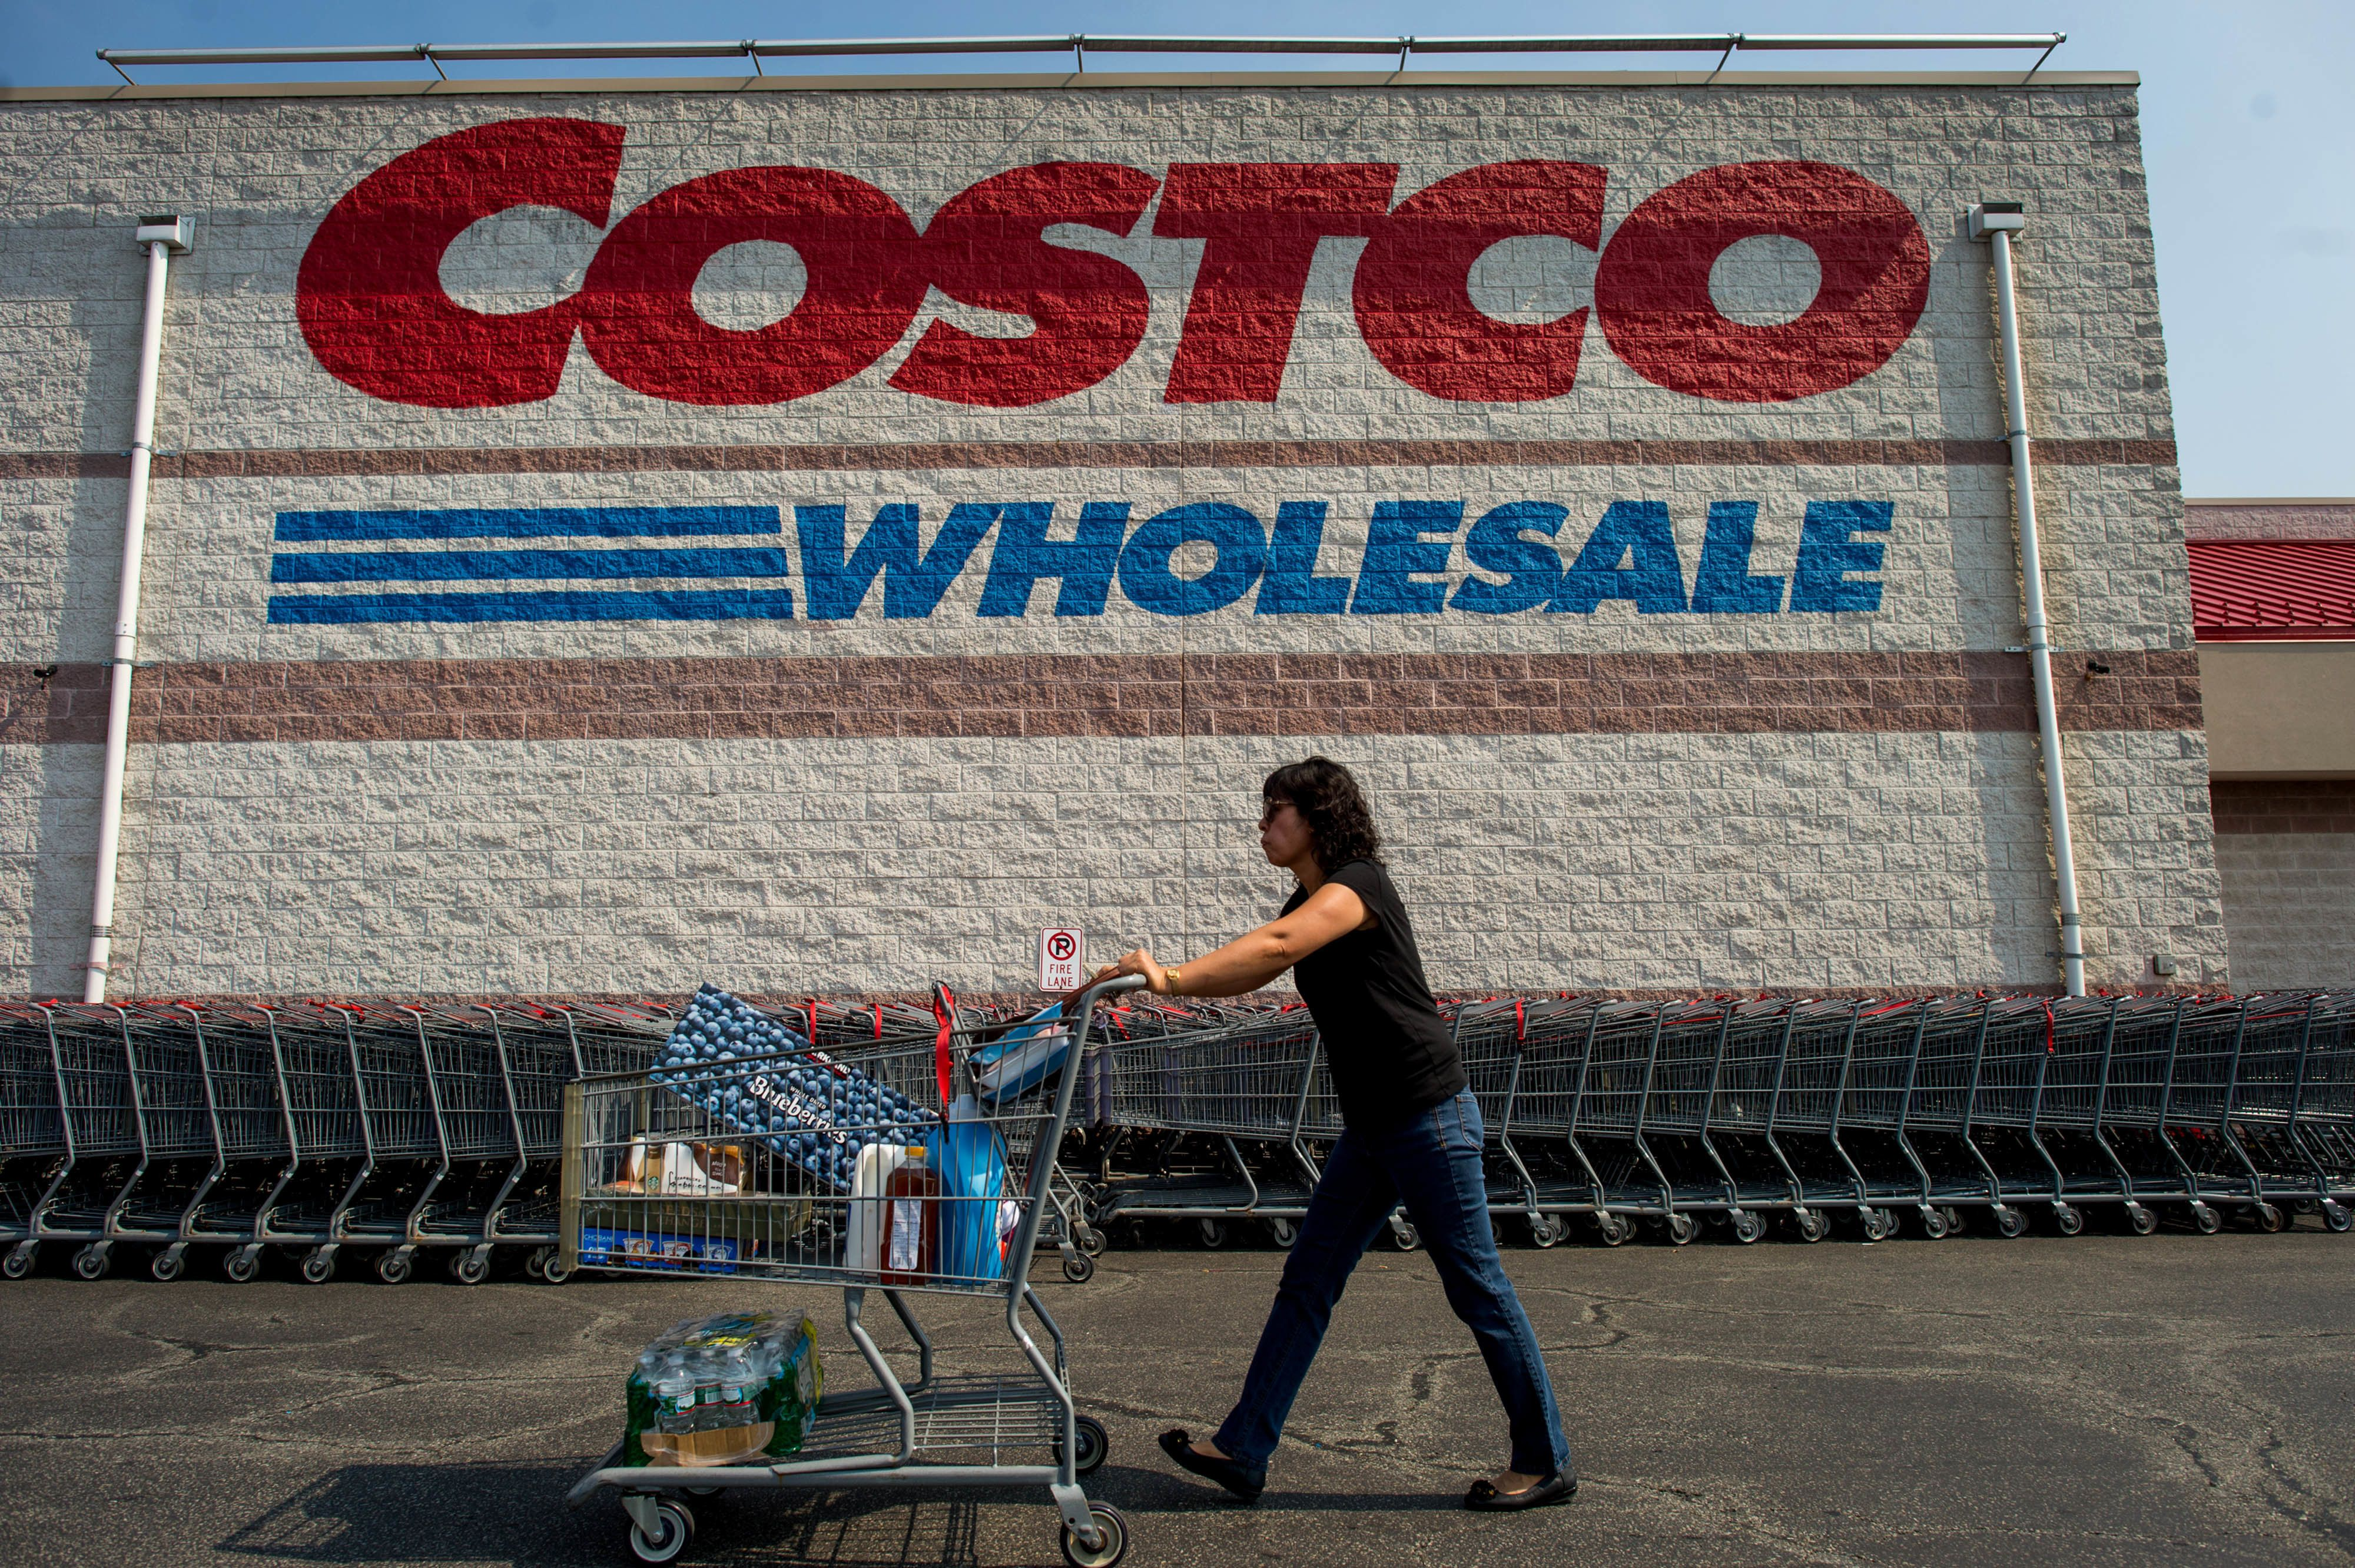 A customer pushes a cart of purchased items outside a Costco Wholesale Corp. store in Hackensack, New Jersey, U.S., on Wednesday, Sept. 11, 2013. The U.S. Census Bureau is scheduled to release business inventories data on Sept. 13. Photographer: Ron Antonelli/Bloomberg via Getty Images